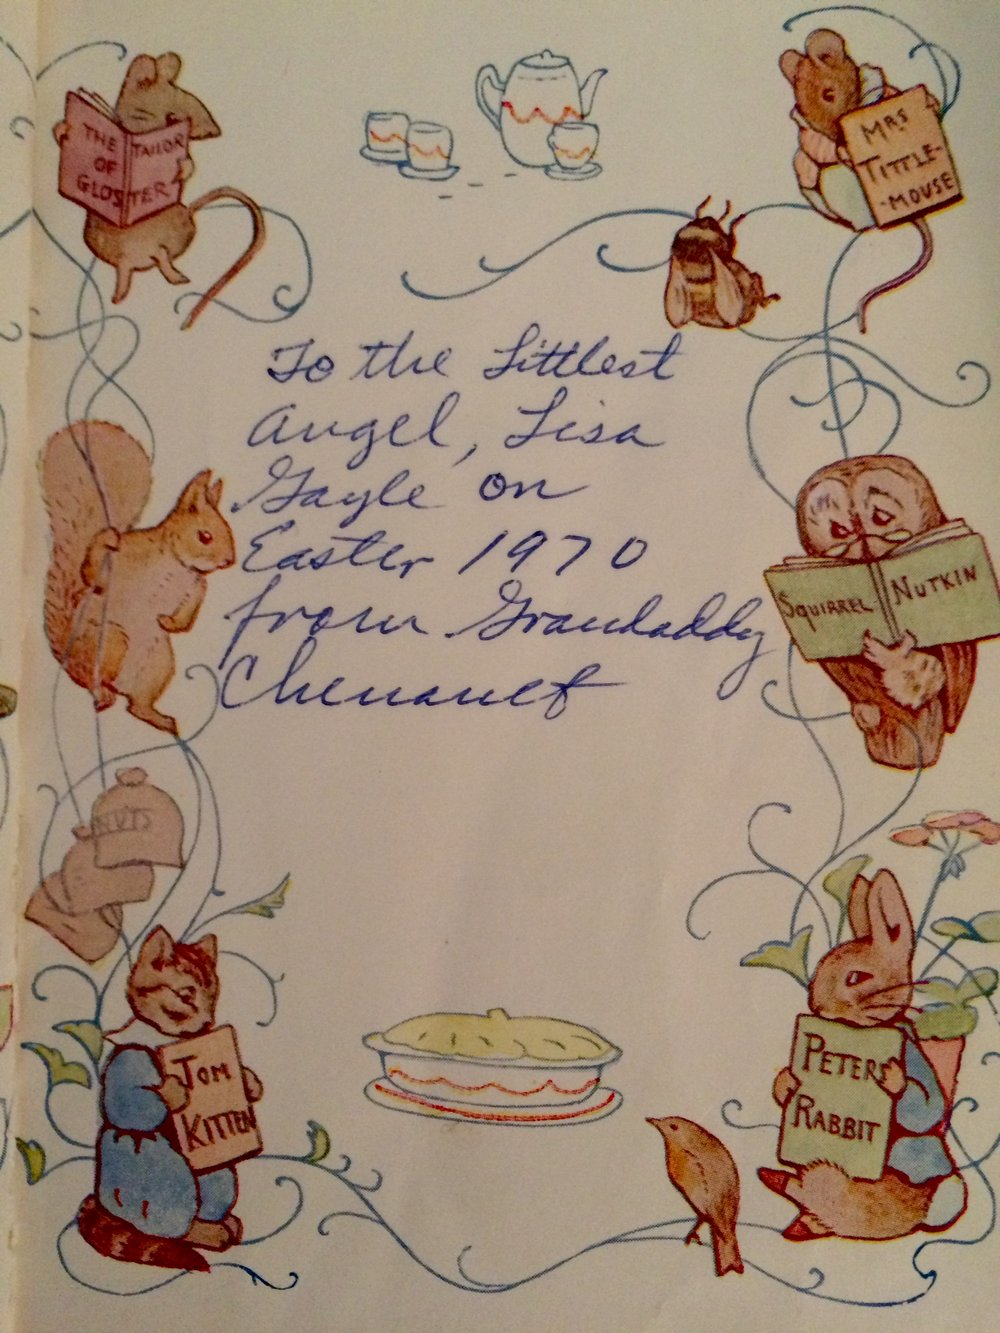 Inscription in The Tale of Squirrel Nutkin by Beatrix Potter